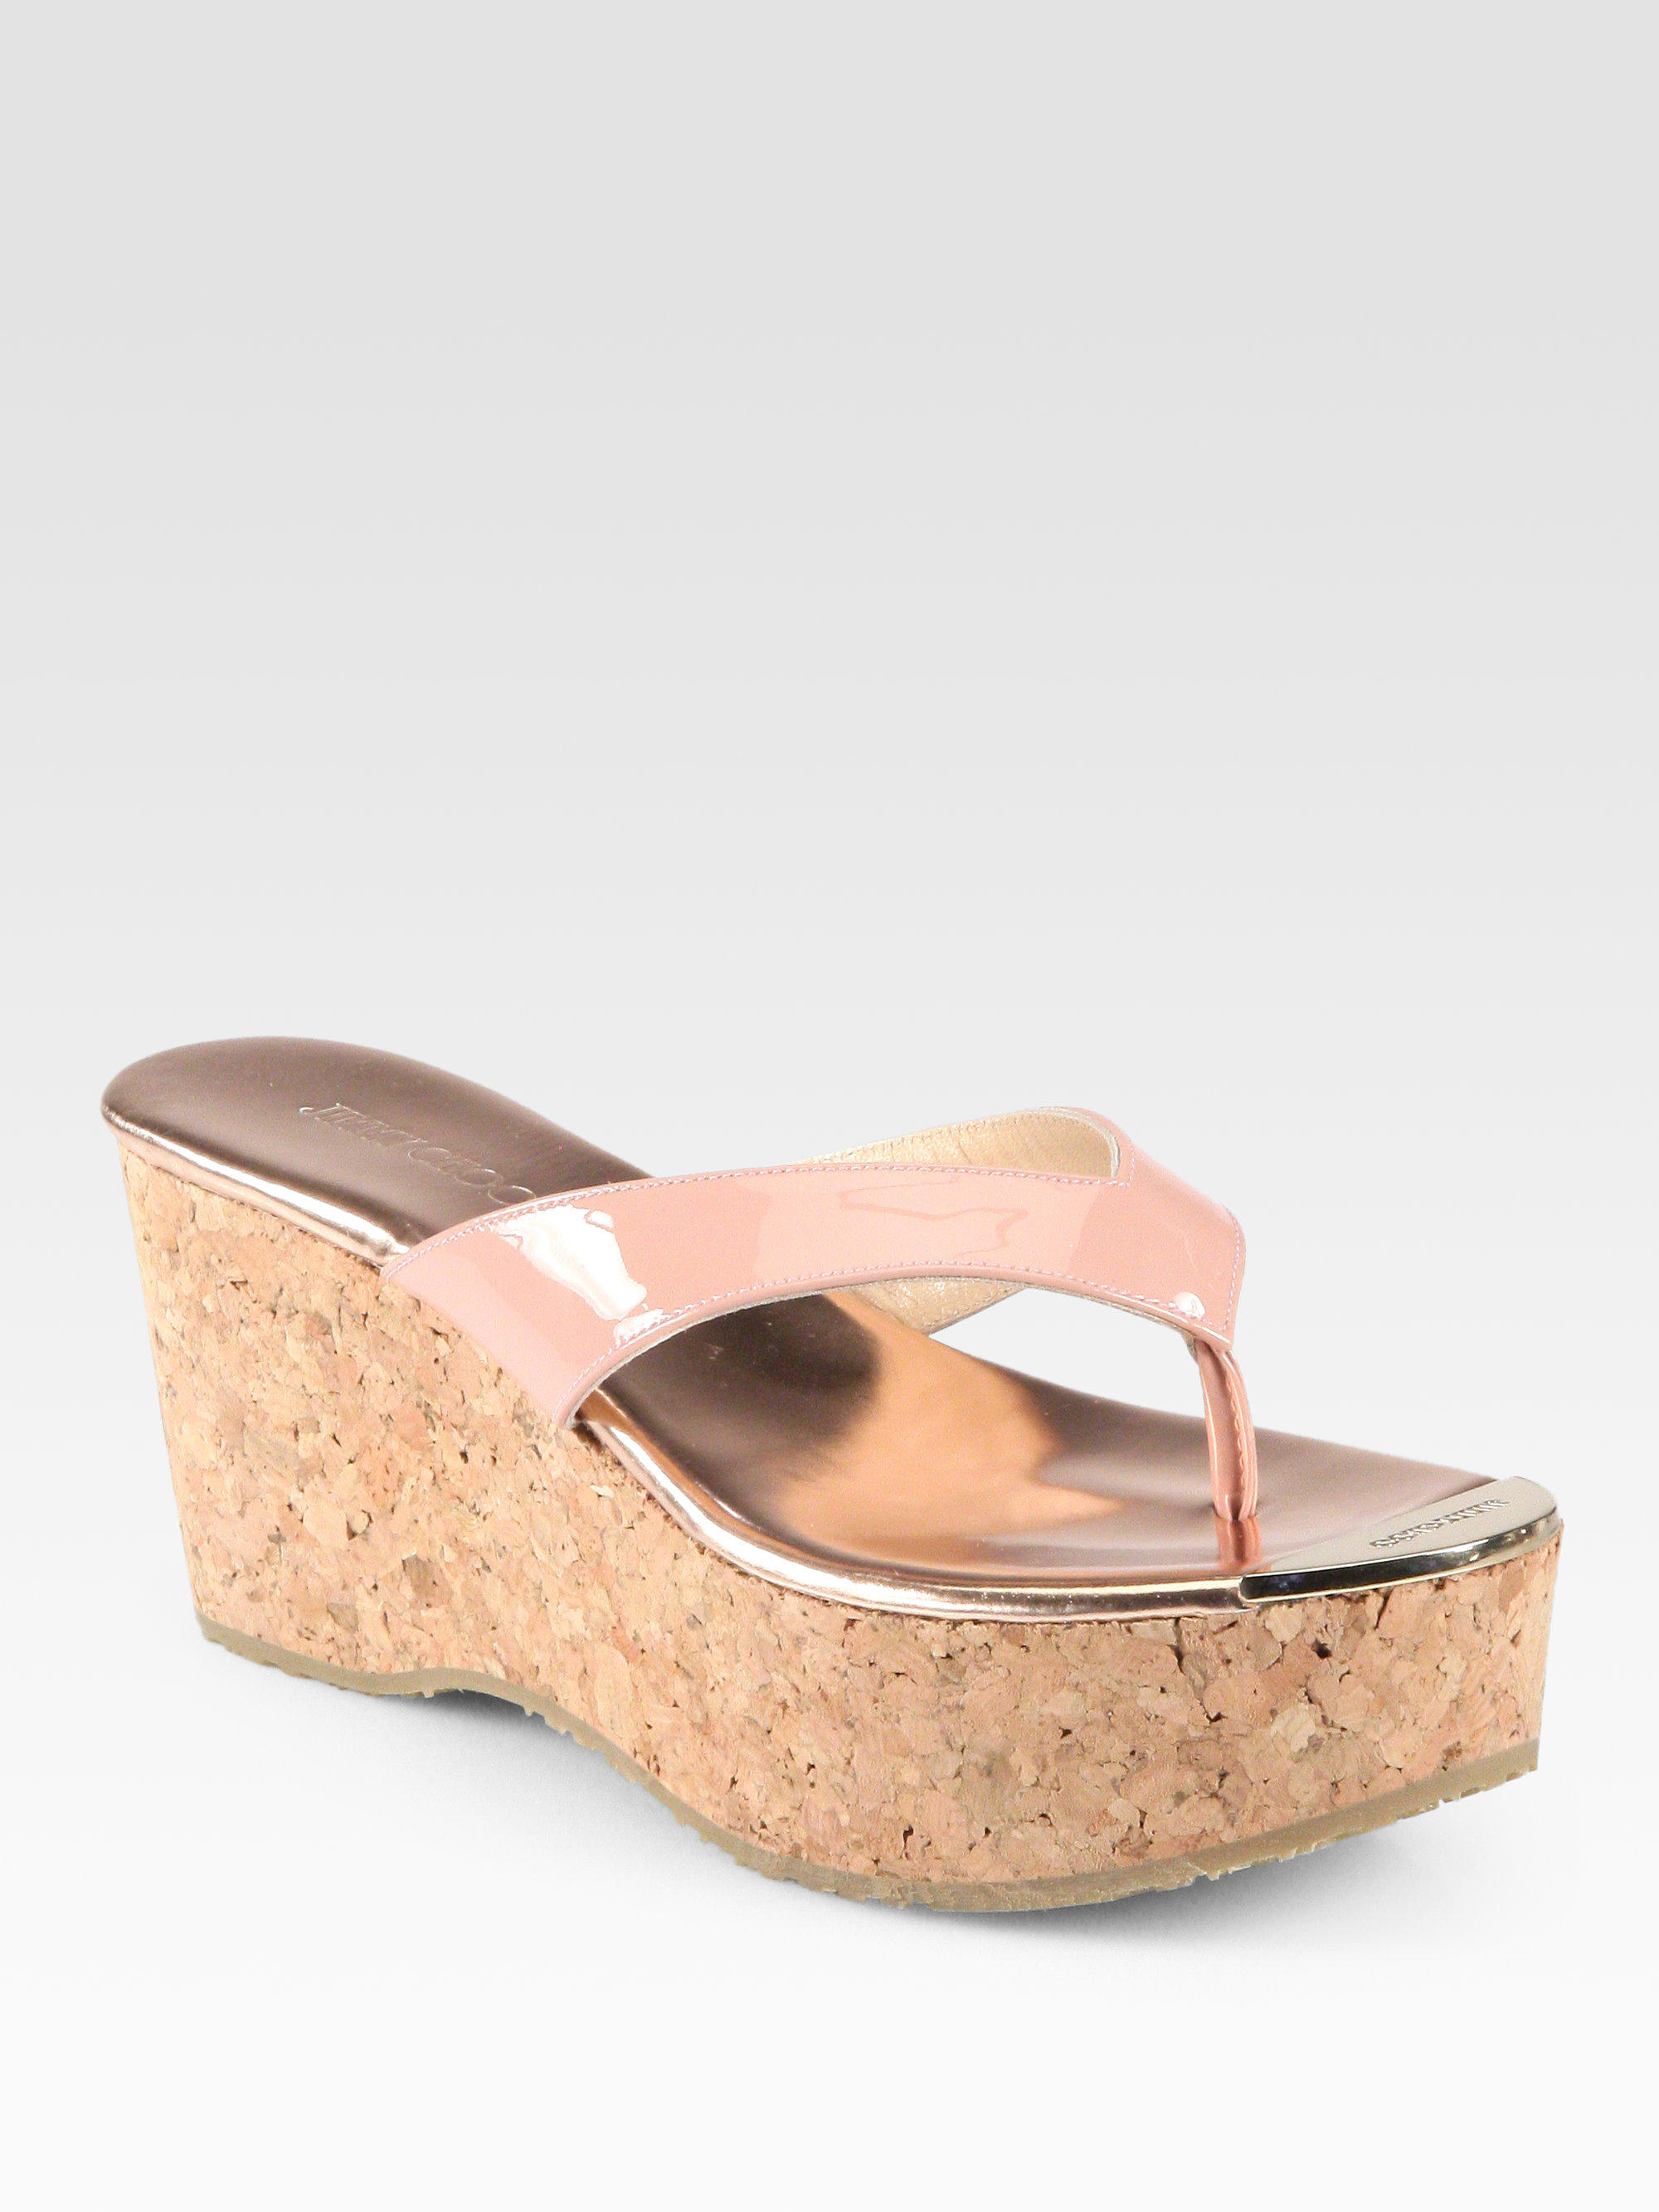 good selling for sale Jimmy Choo Pathos Thong Wedges for sale top quality buy cheap 2015 new arrival free shipping official 9G5IoO